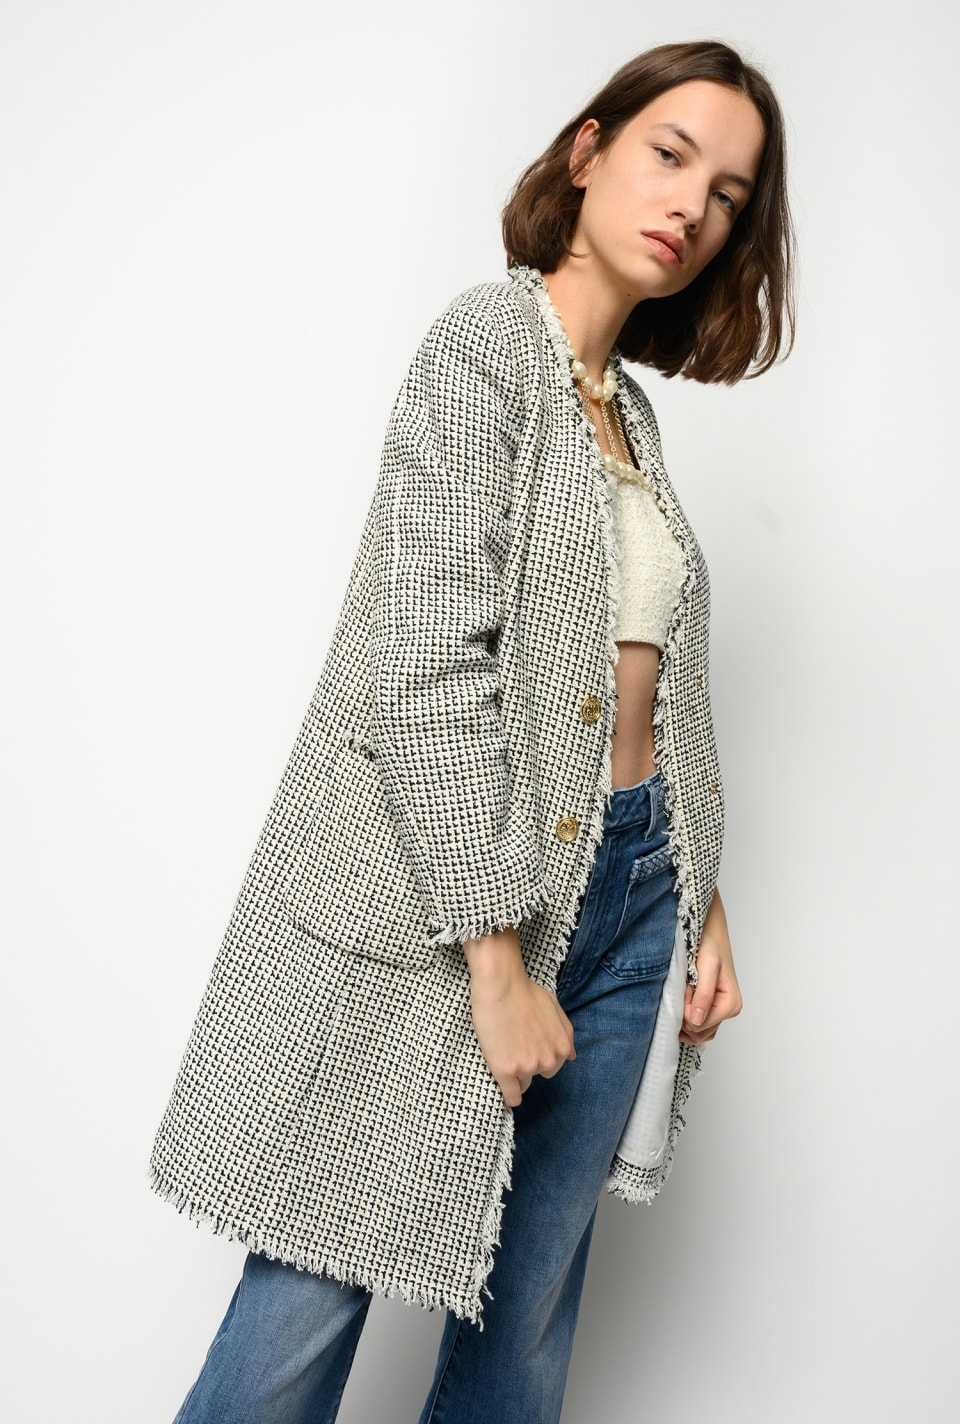 Long patterned tweed jacket - Pinko